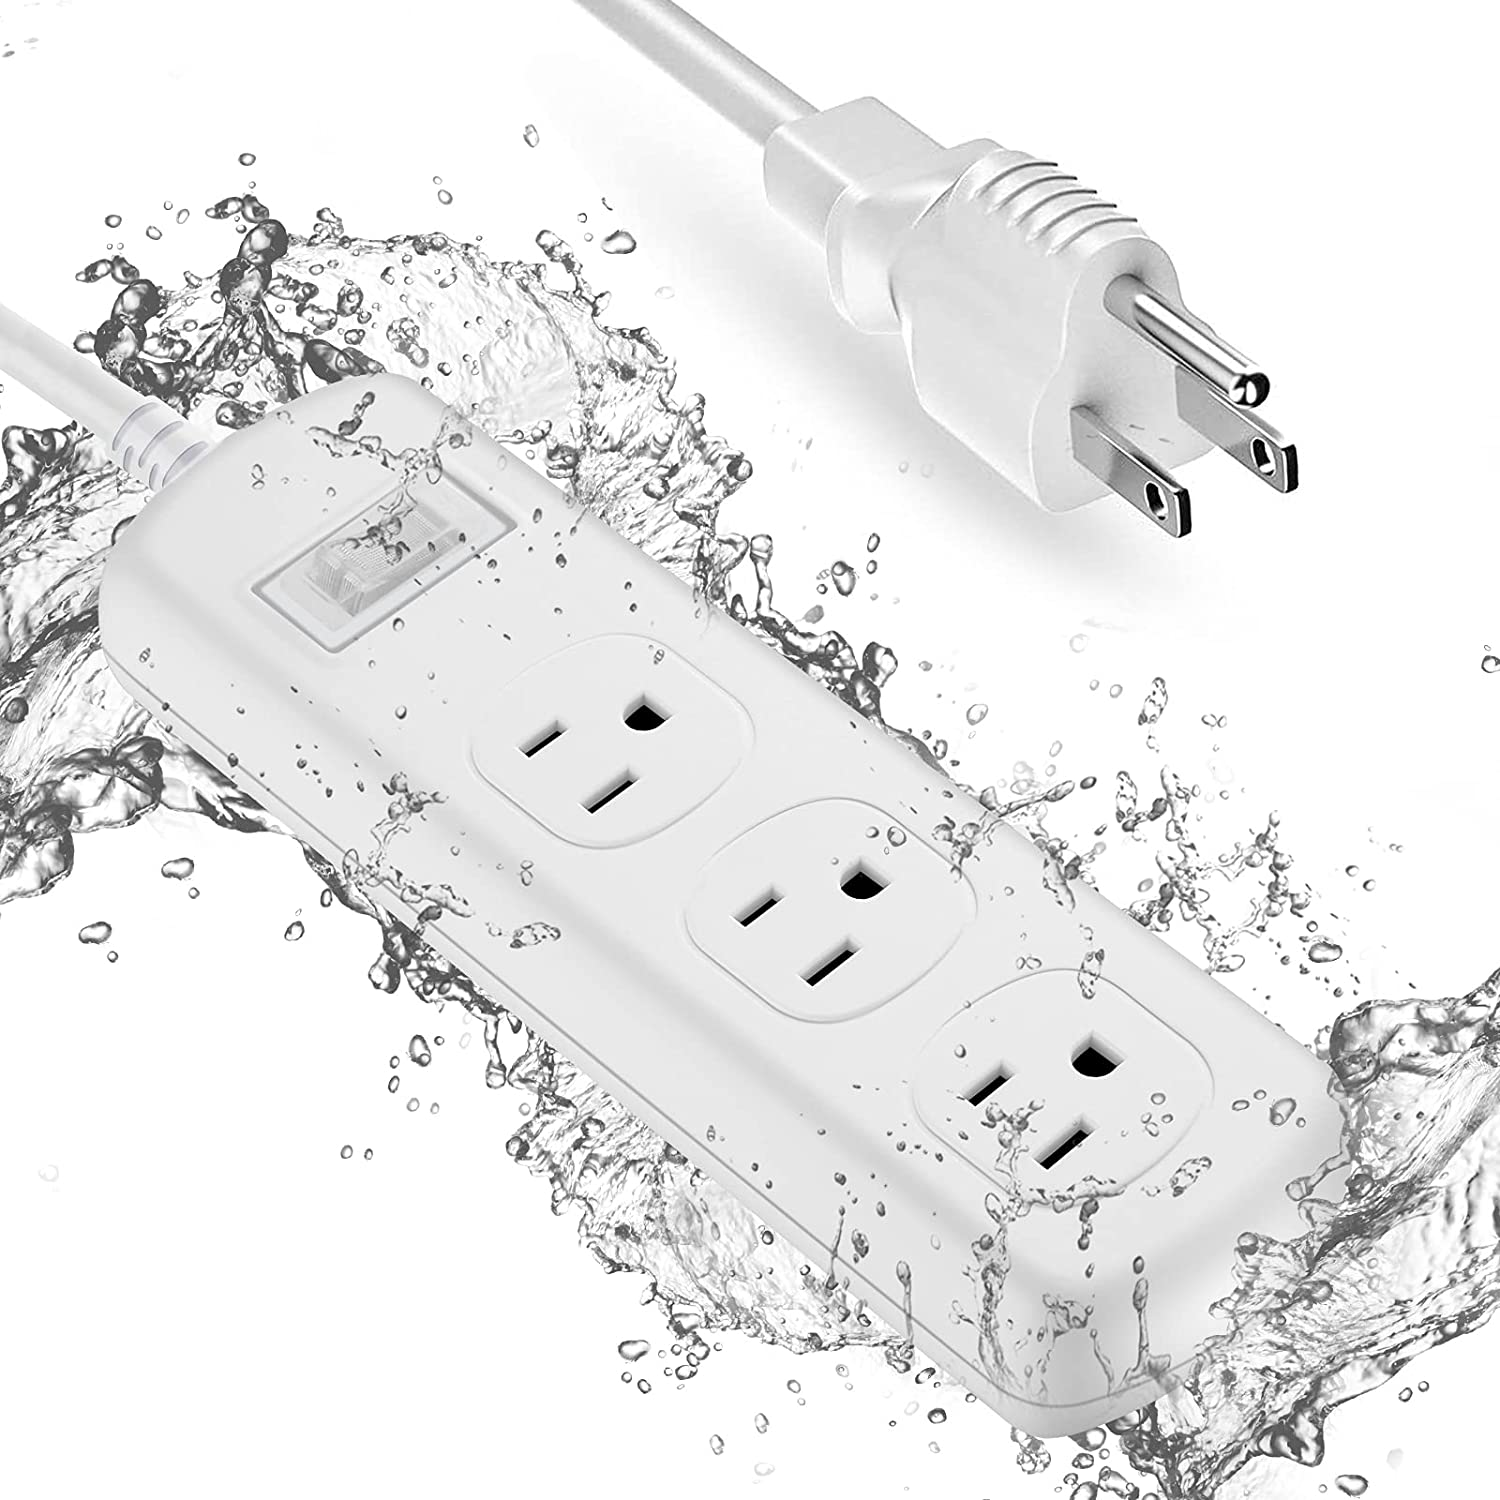 Power Strip Surge Protector Waterproof, with 6 ft Long Extension Cord and 3 Outlets, IPX6 Waterproof and Electric Shockproof Socket for Baby Room, Bathroom, Kitchen, Garden, Yard Lighting